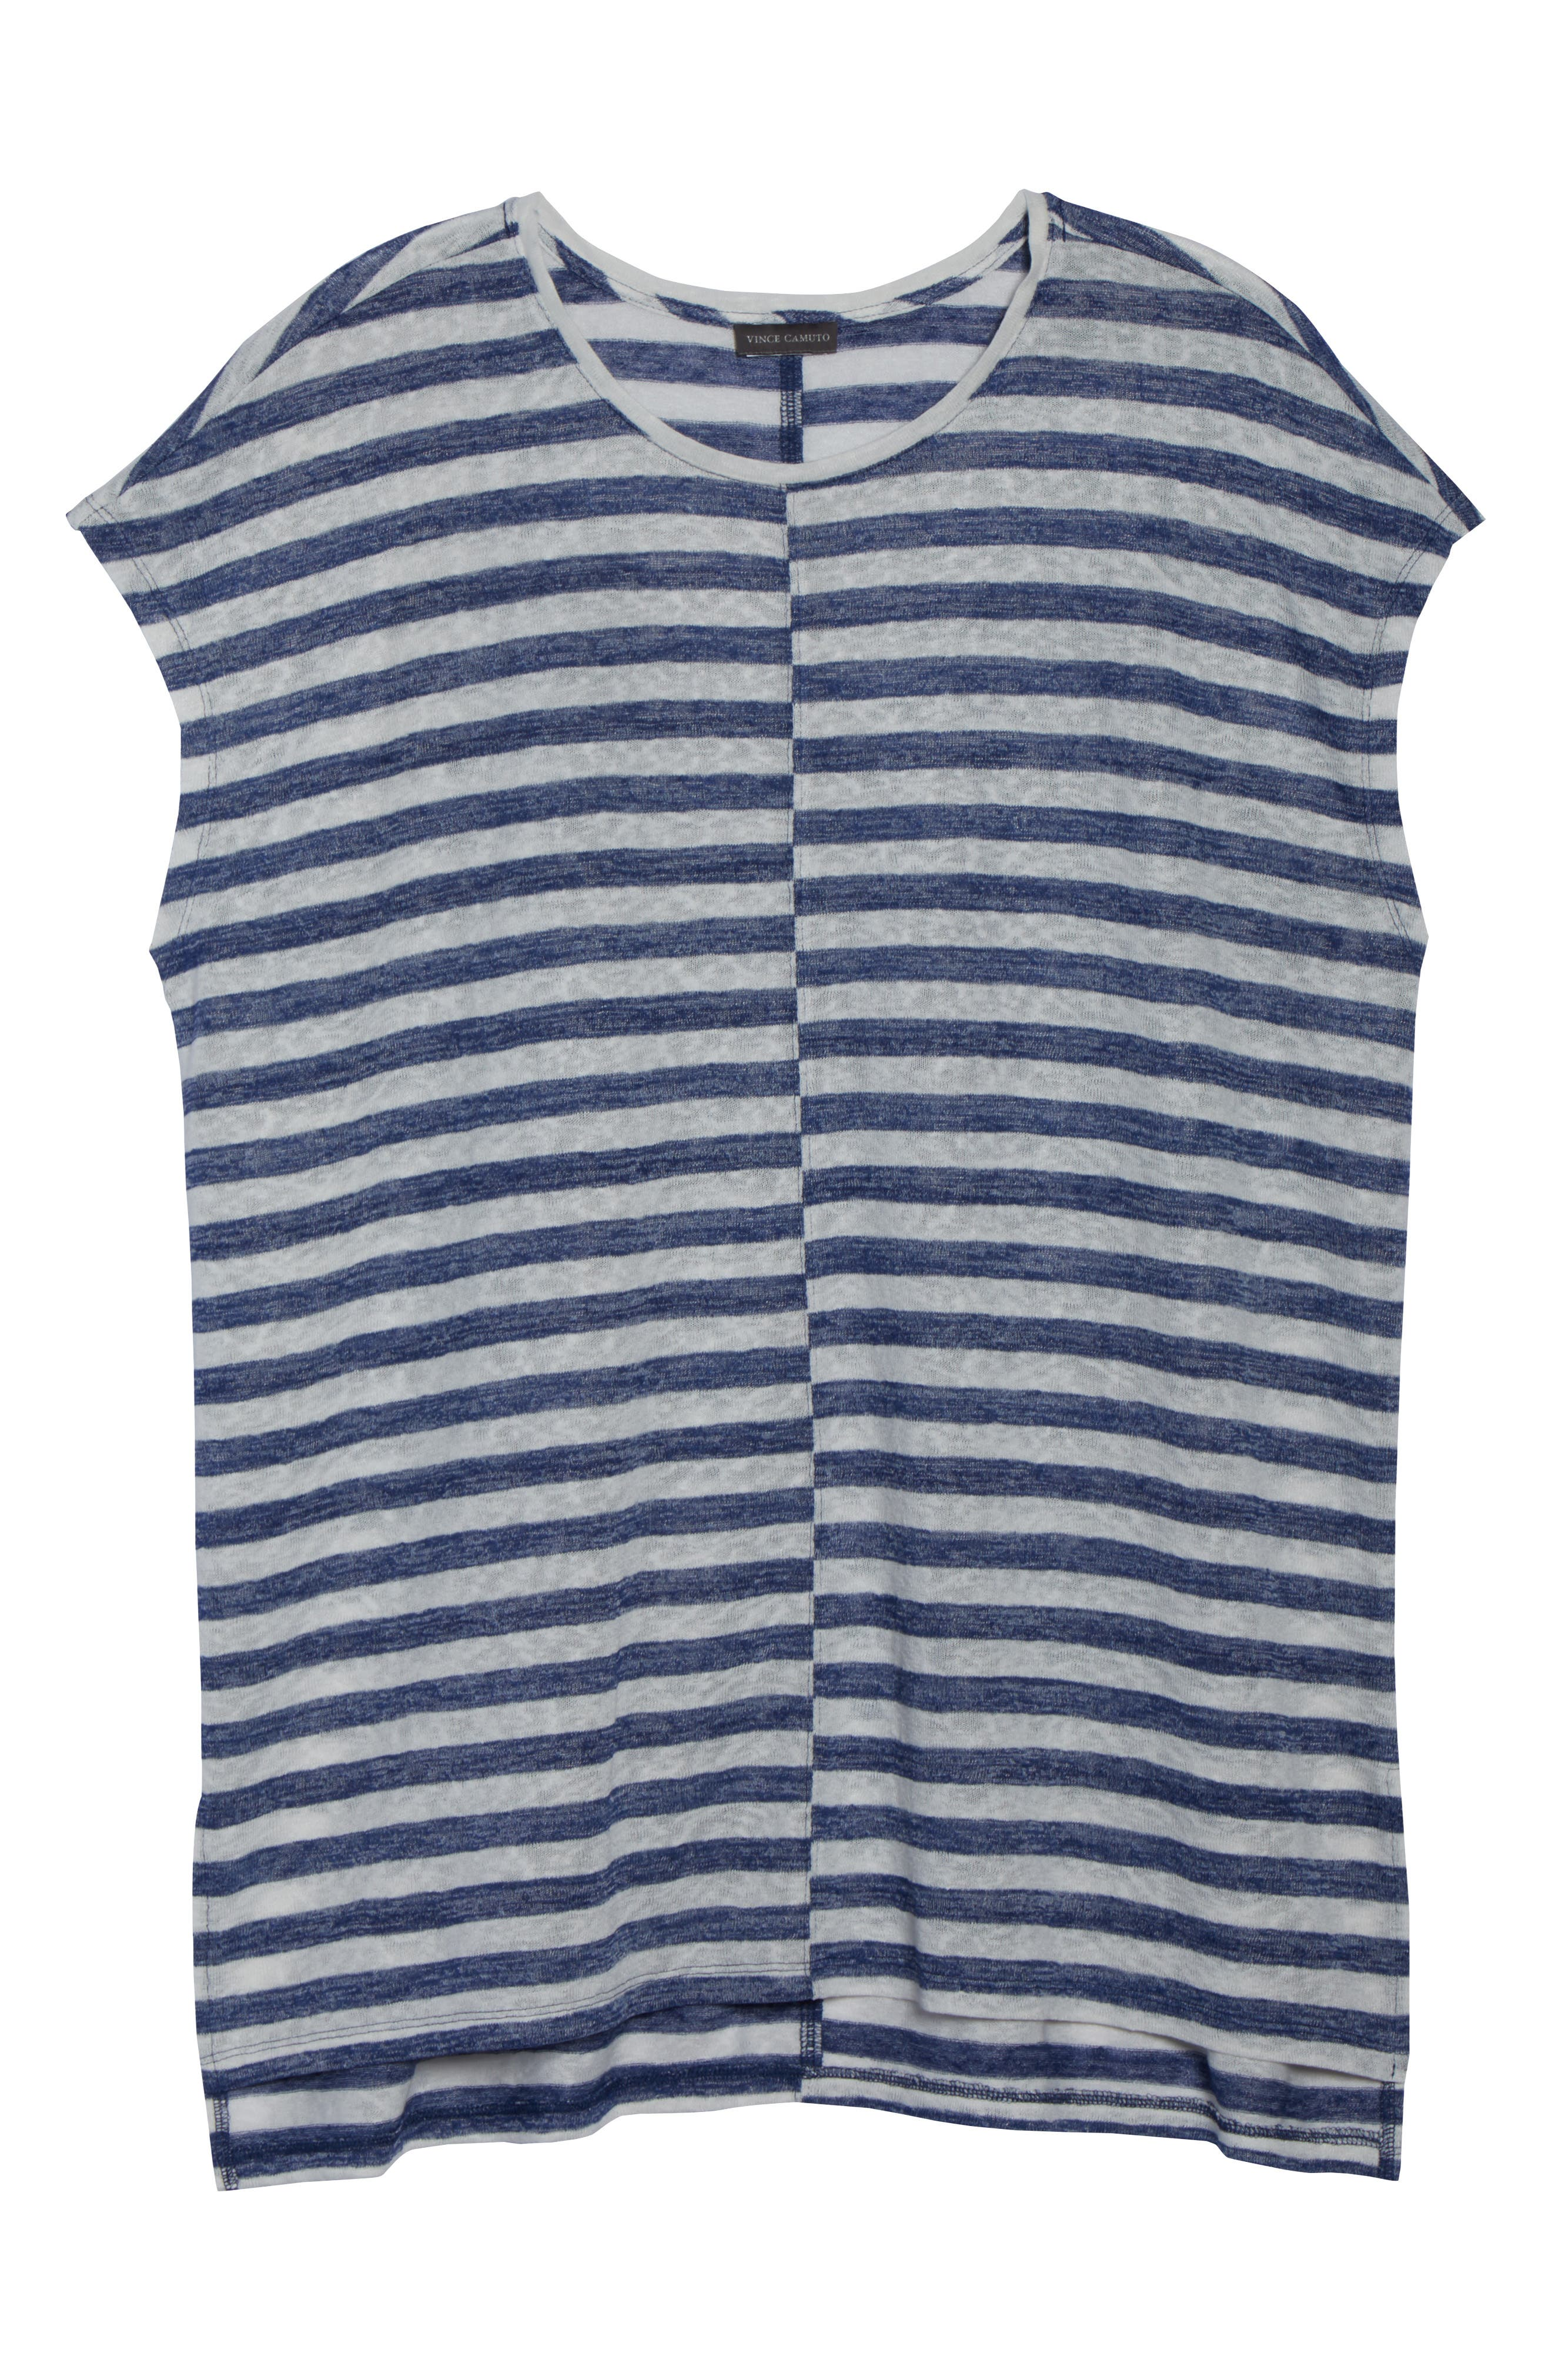 VINCE CAMUTO,                             Offset Stripe Top,                             Alternate thumbnail 7, color,                             491